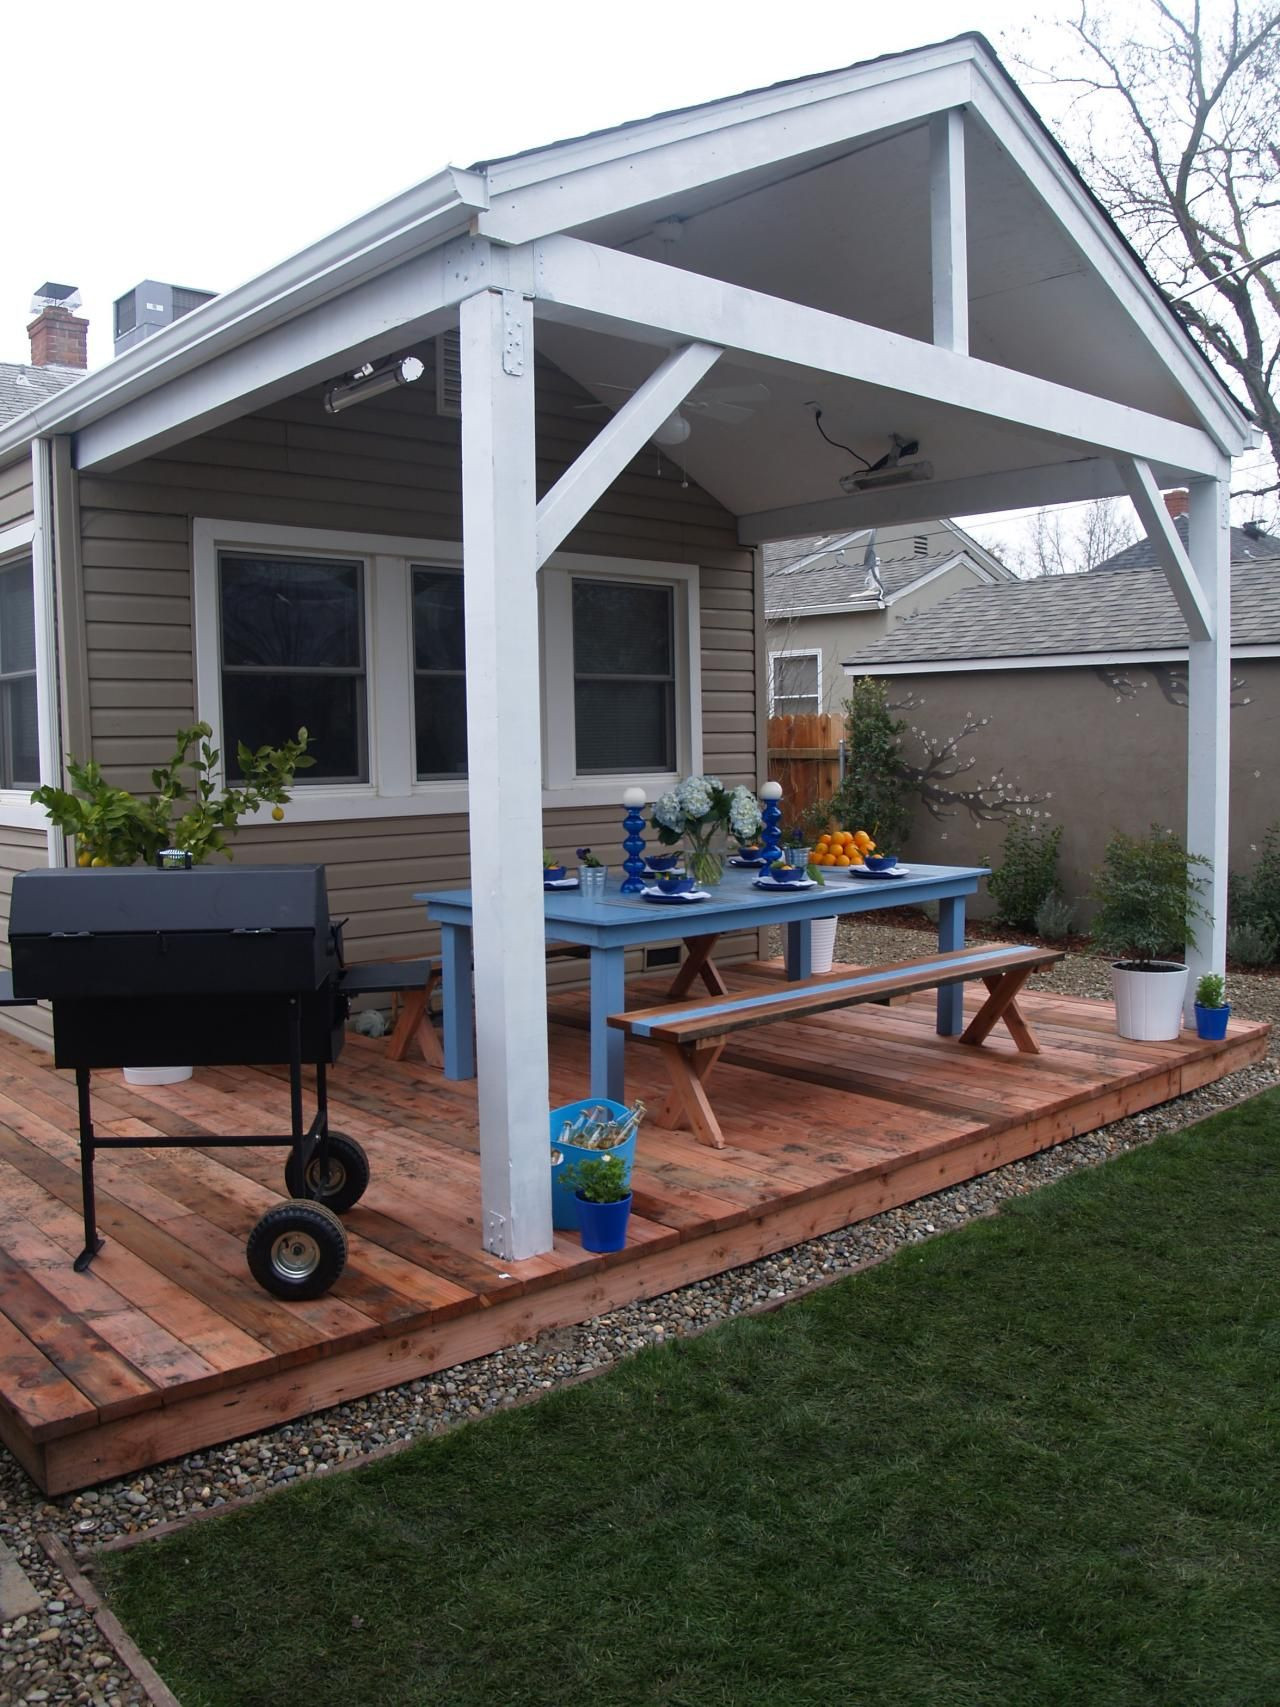 Best ideas about DIY Covered Patio Plans . Save or Pin Beautiful Decks Designed by DIY Network Experts Now.